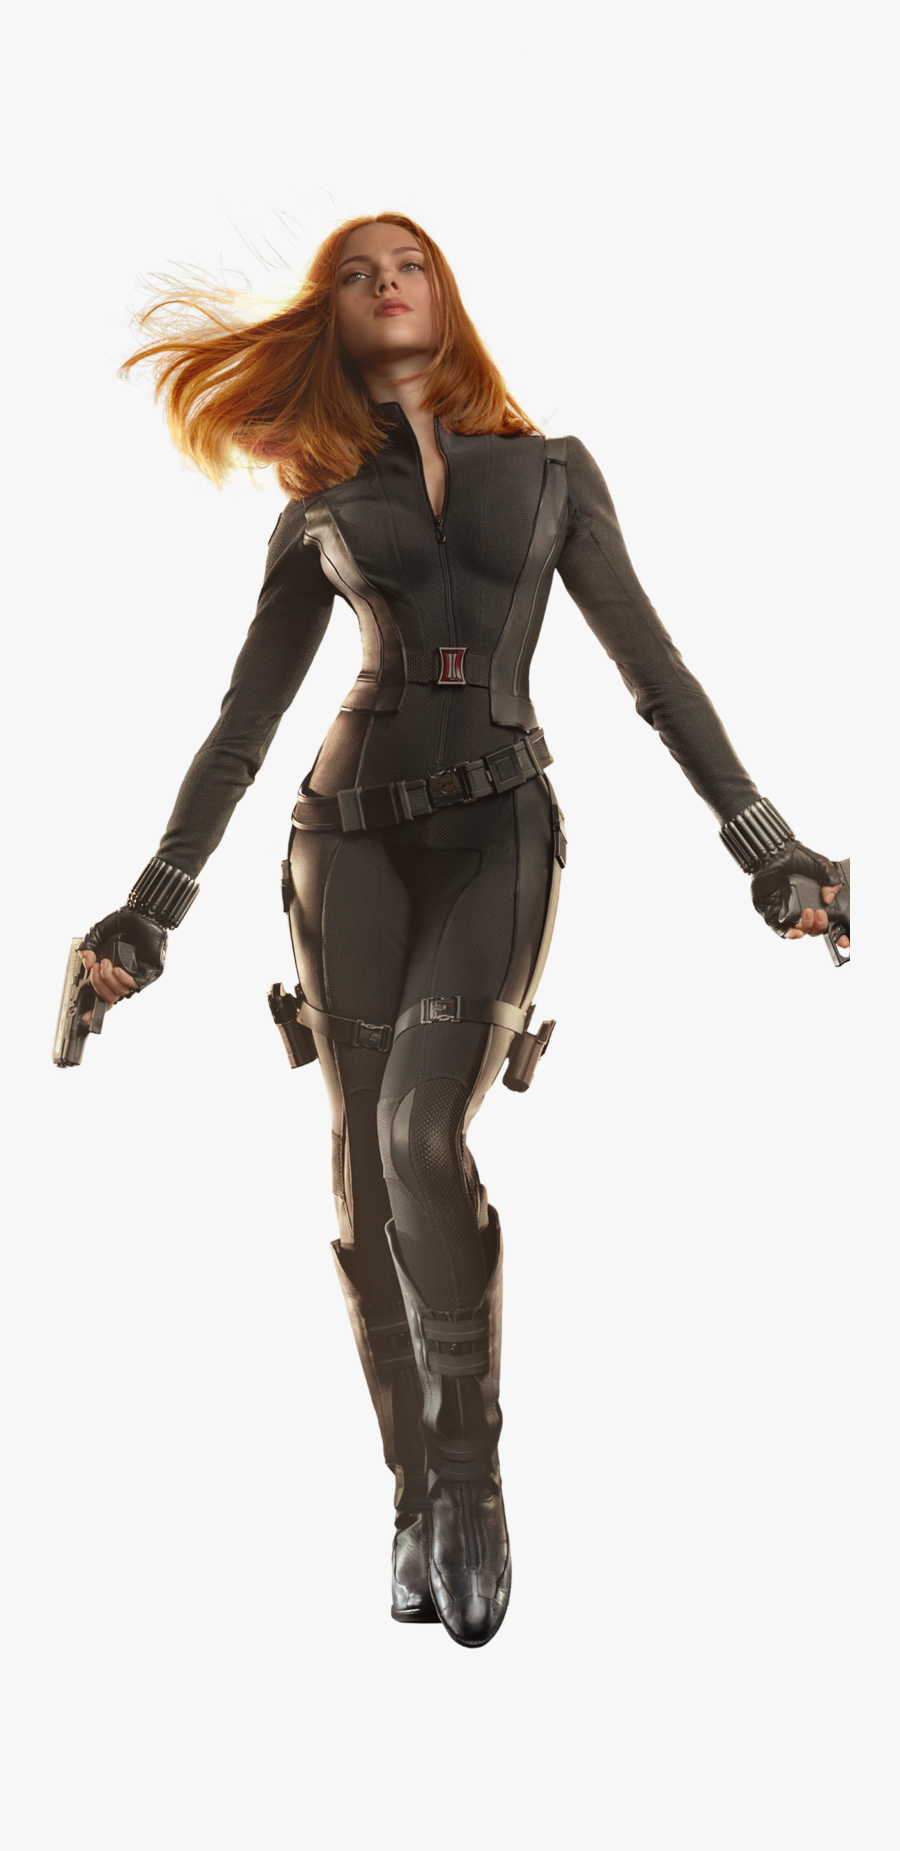 Transparent Black Widow Png, Transparent Clipart